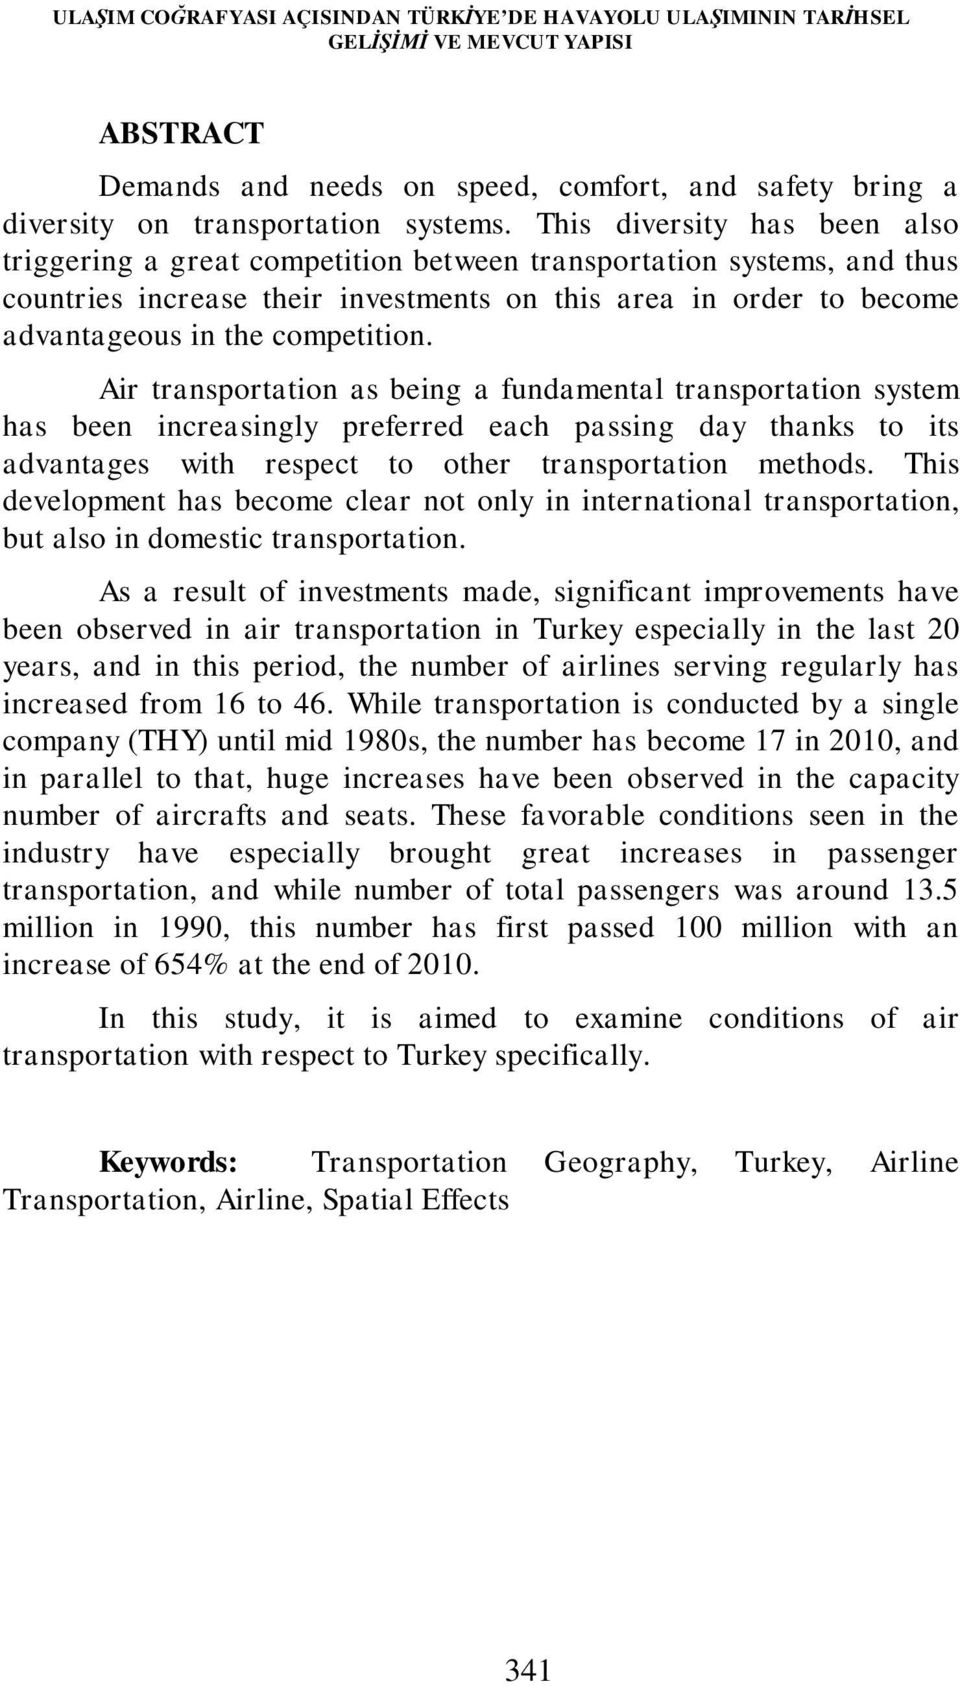 competition. Air transportation as being a fundamental transportation system has been increasingly preferred each passing day thanks to its advantages with respect to other transportation methods.